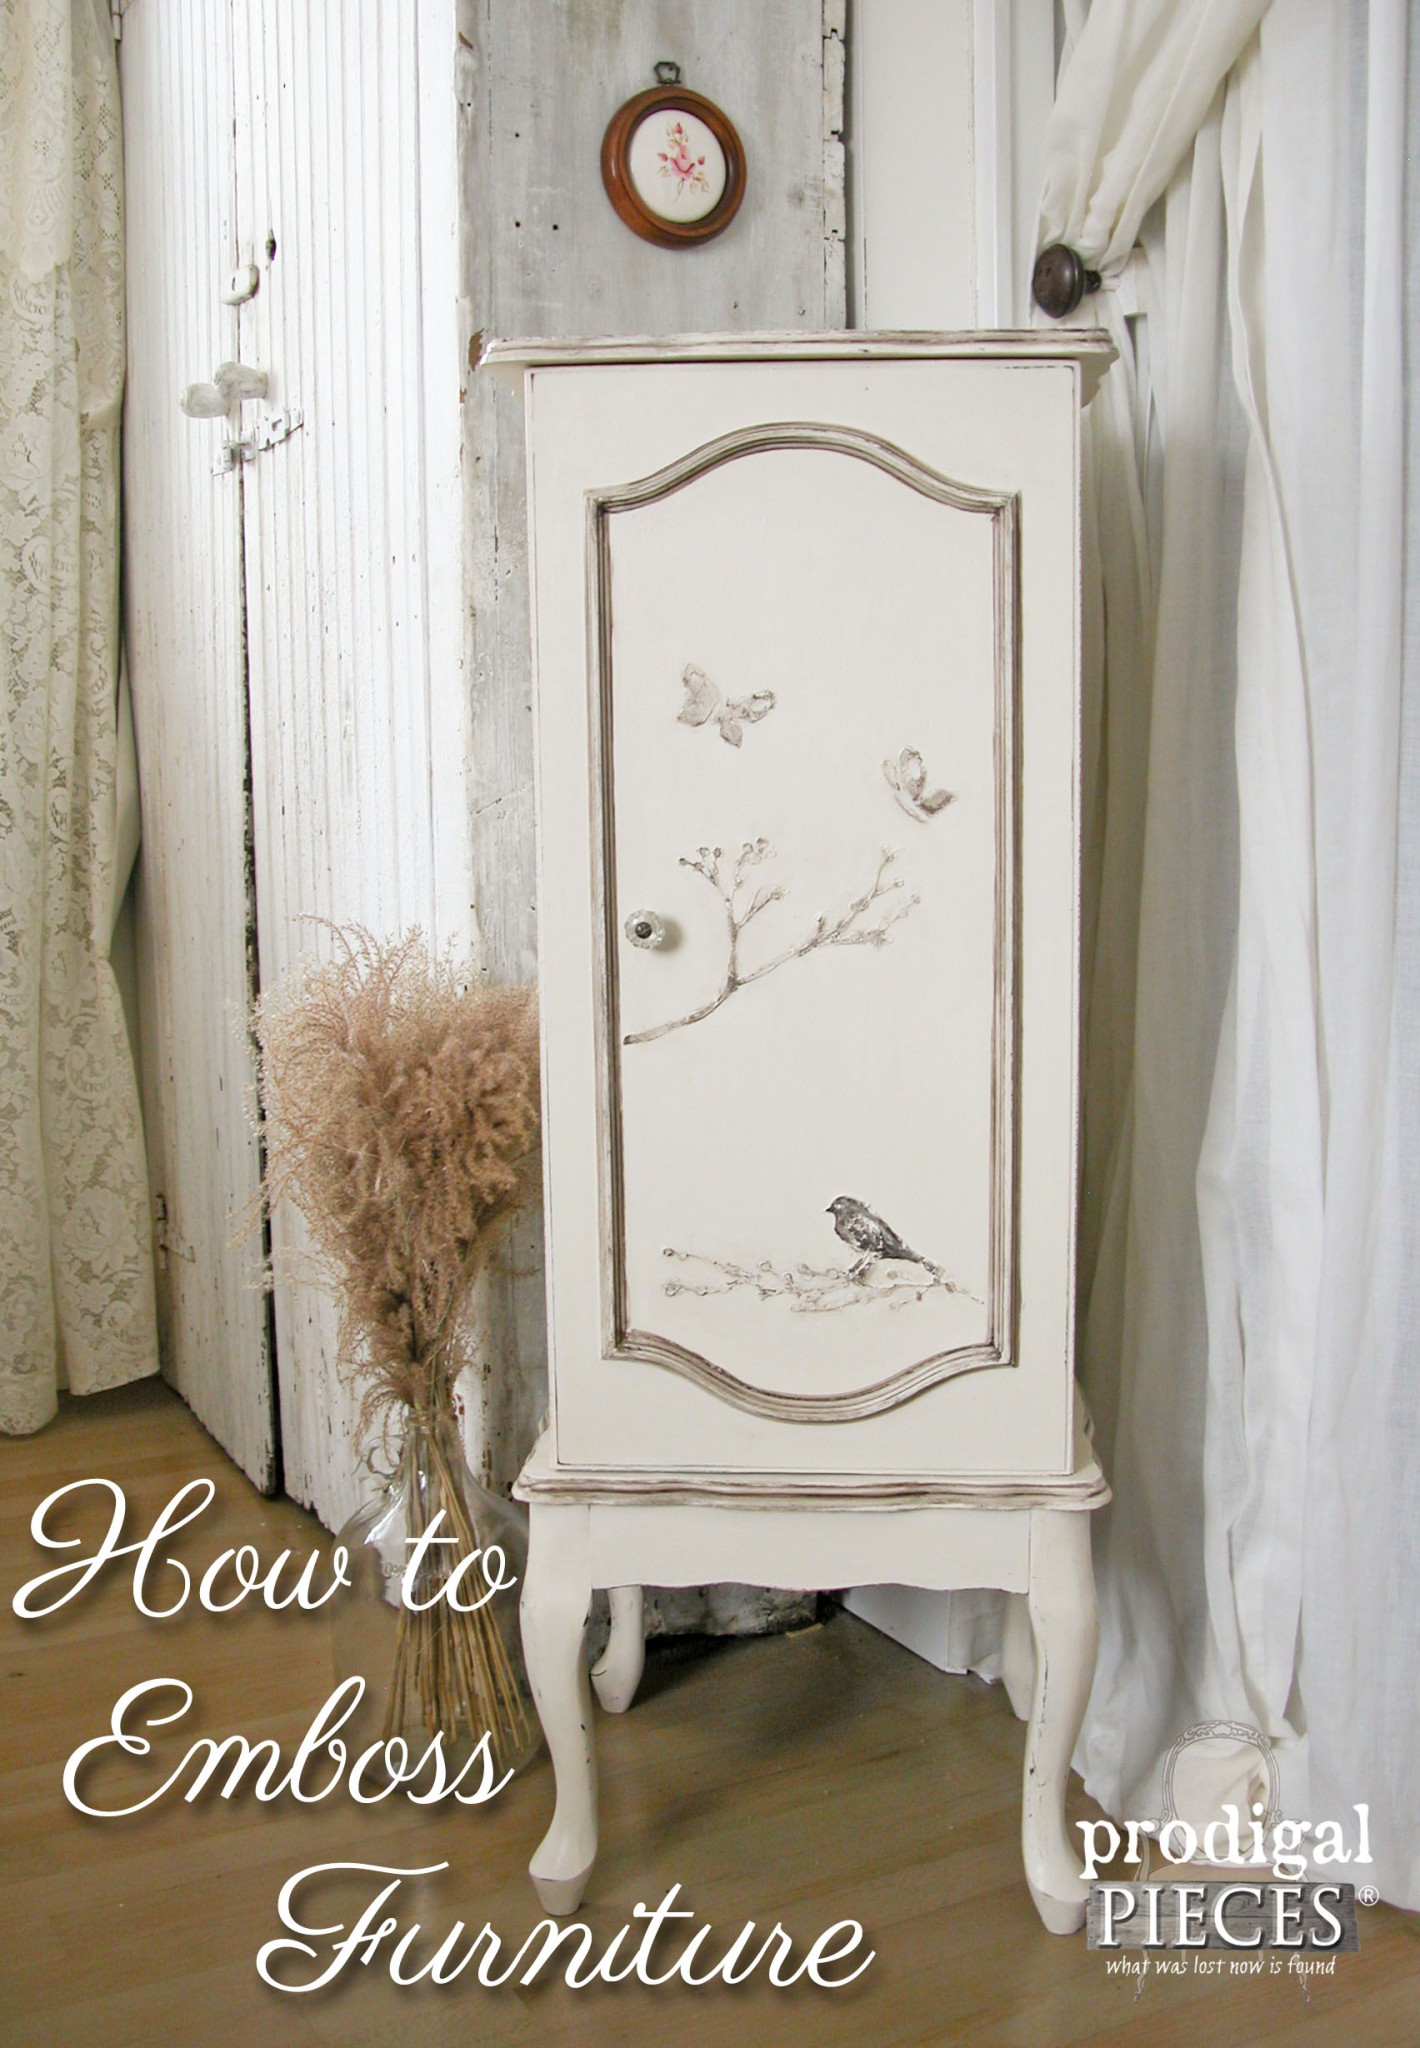 How to Emboss Furniture with Stencils by Prodigal Pieces | www.prodigalpieces.com